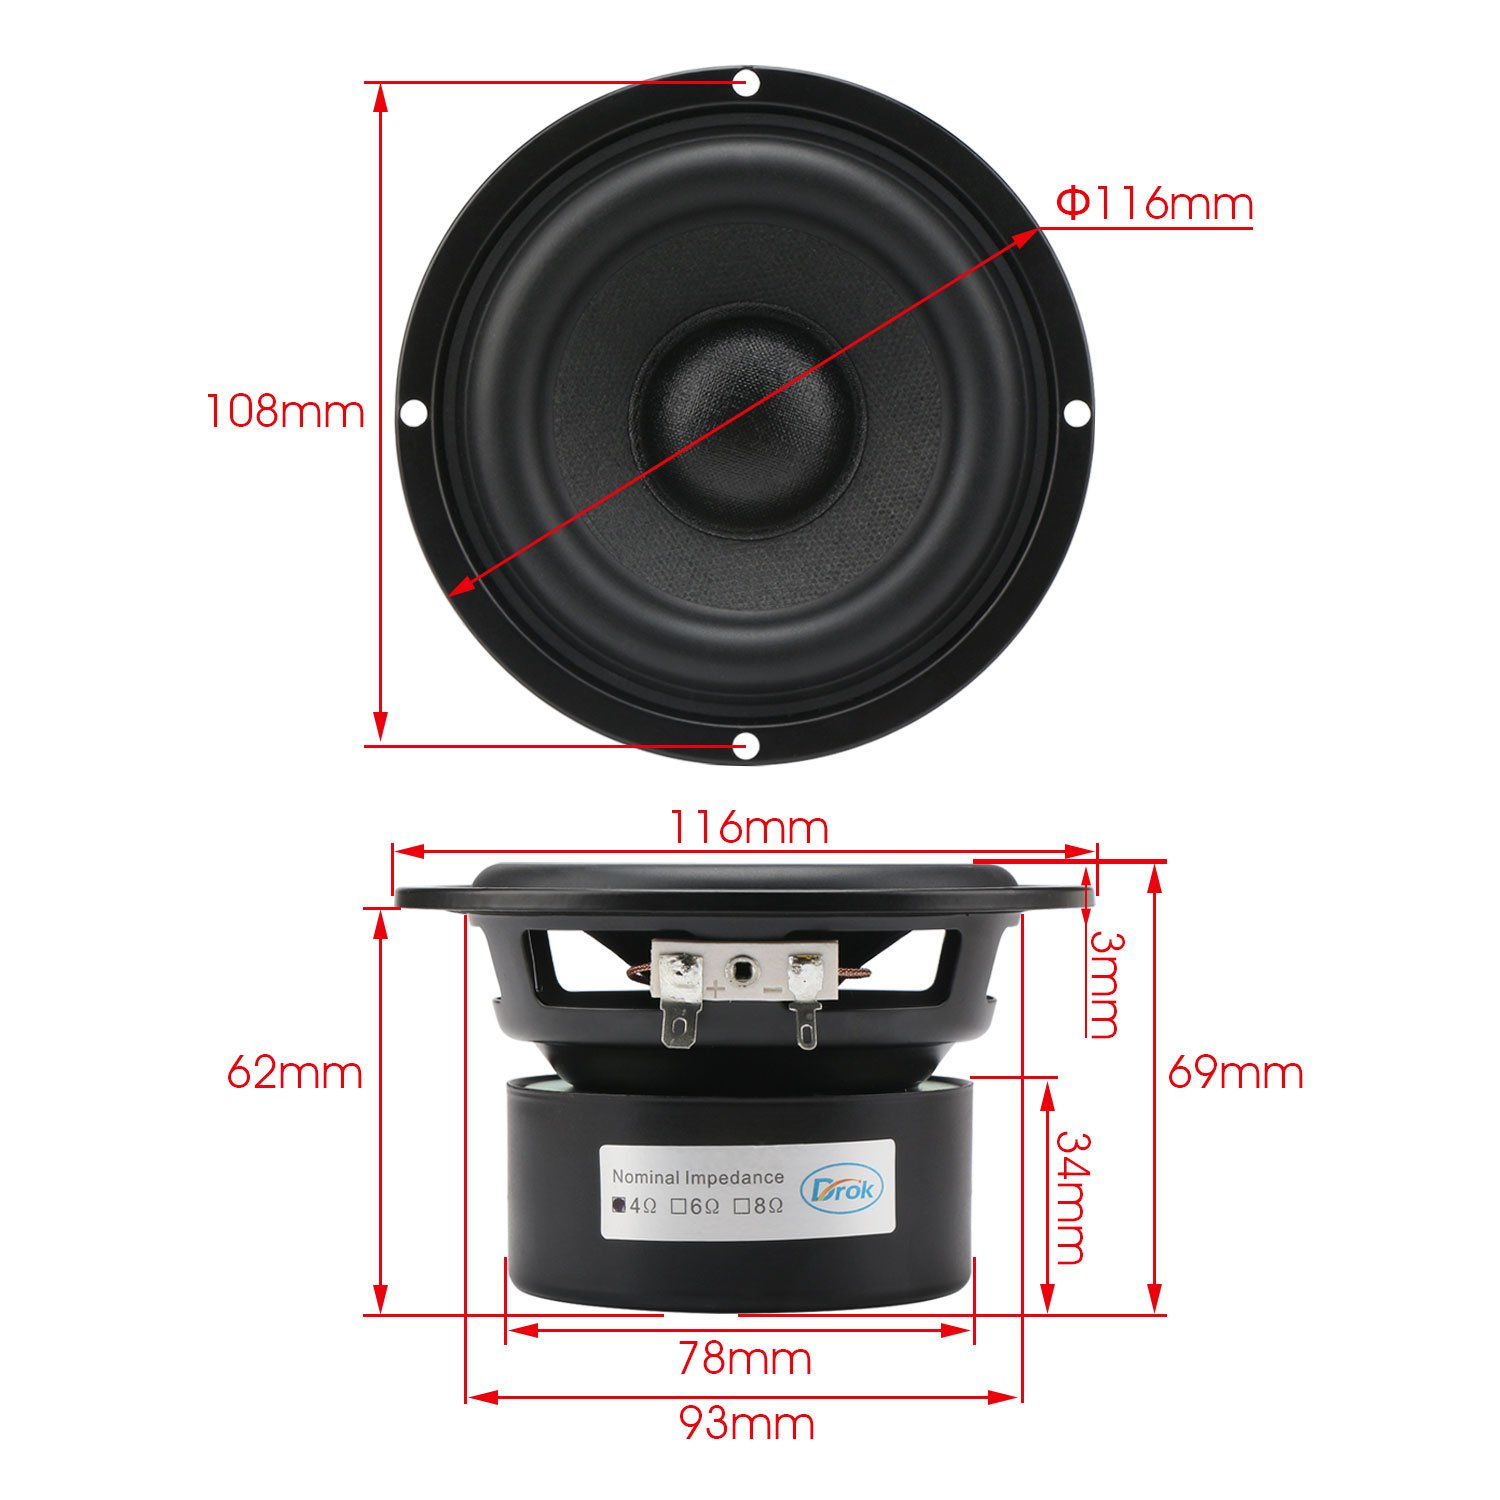 DROK 4 4 Ohm White Audio Speakers 40W Anti-Magnetic Car Stereo Bass Speakers 87dB High Sensitivity Thumping Subwoofer Loudspeaker for 2.0//2.1 Home Stereo DIY Boombox Satellites